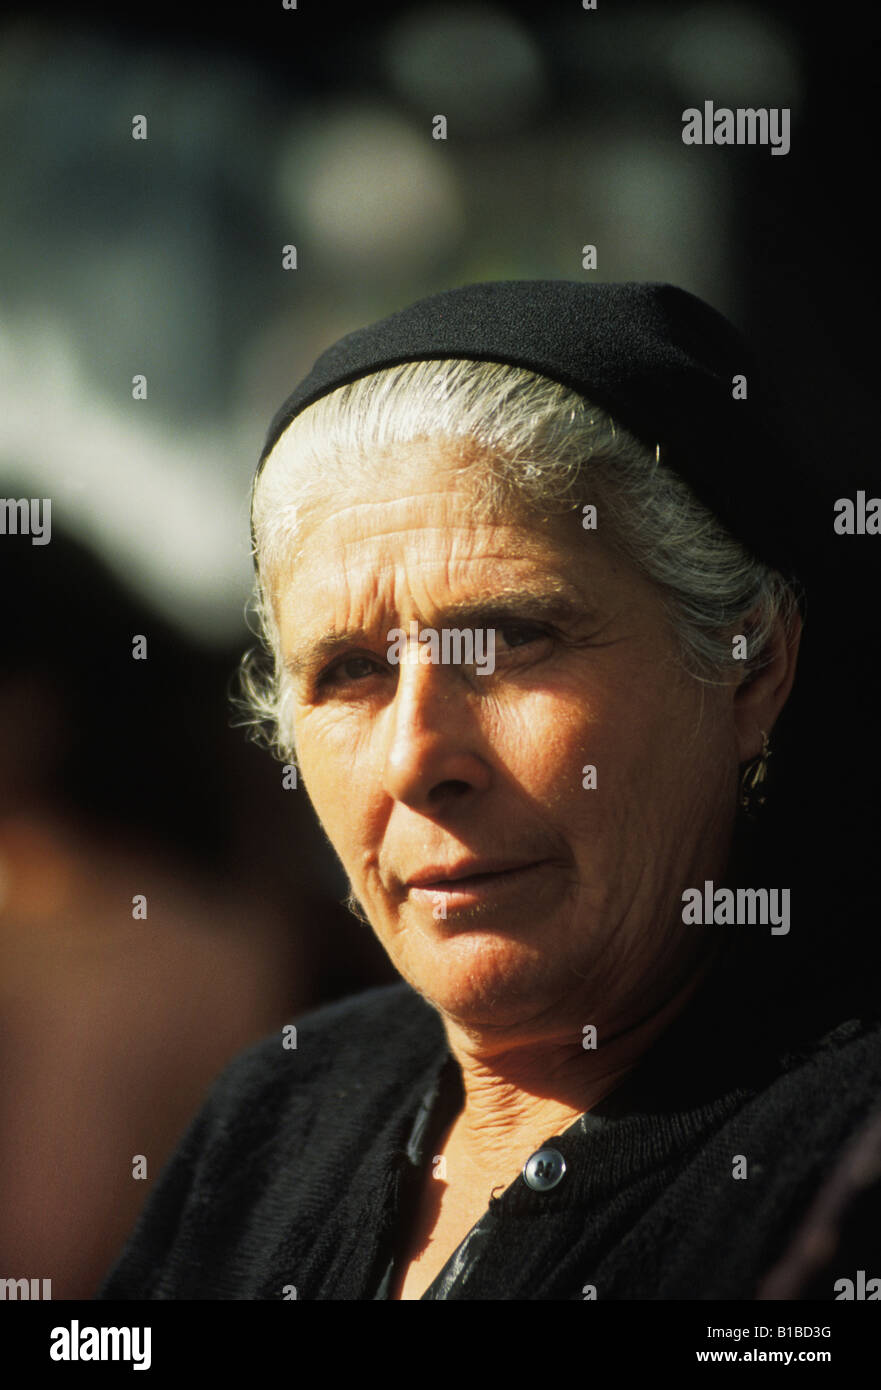 Portrait of Woman of Barcelos in Minho on the Northern Atlantic Coast of Portugal Stock Photo - portrait-of-woman-of-barcelos-in-minho-on-the-northern-atlantic-coast-B1BD3G